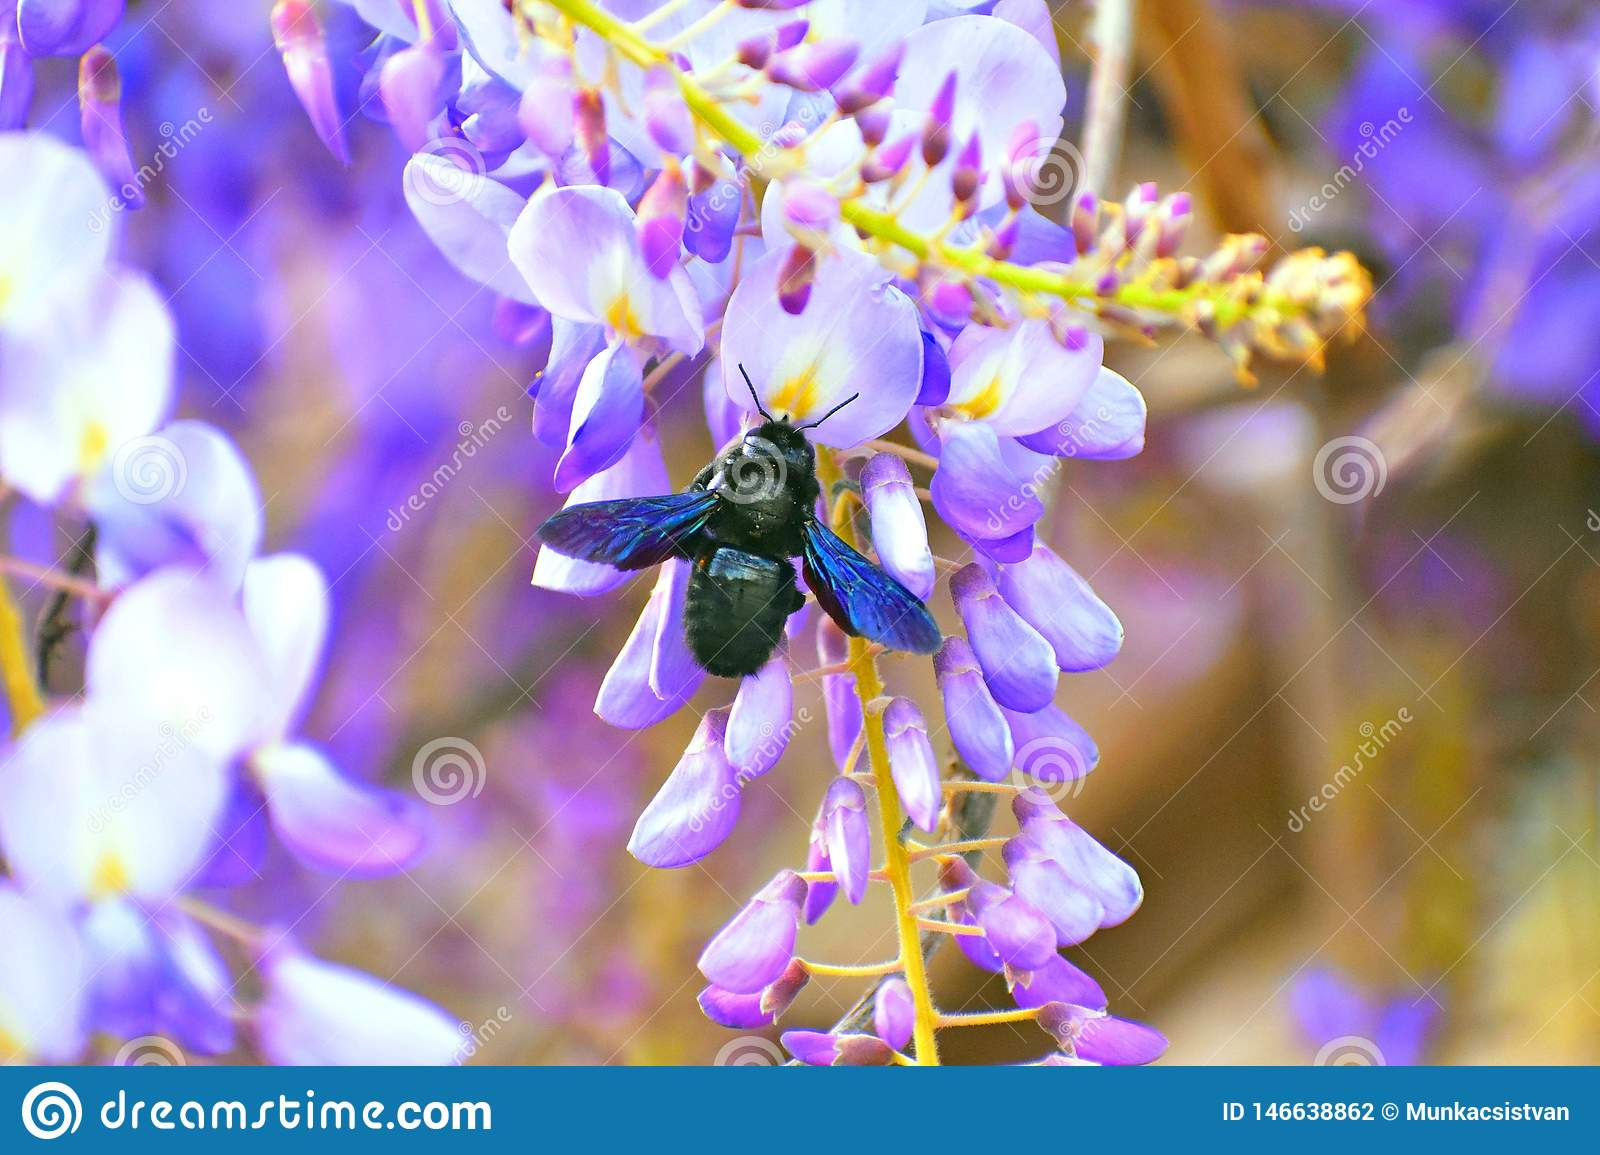 Insects Bumble-bees collect nectar from the flowers.